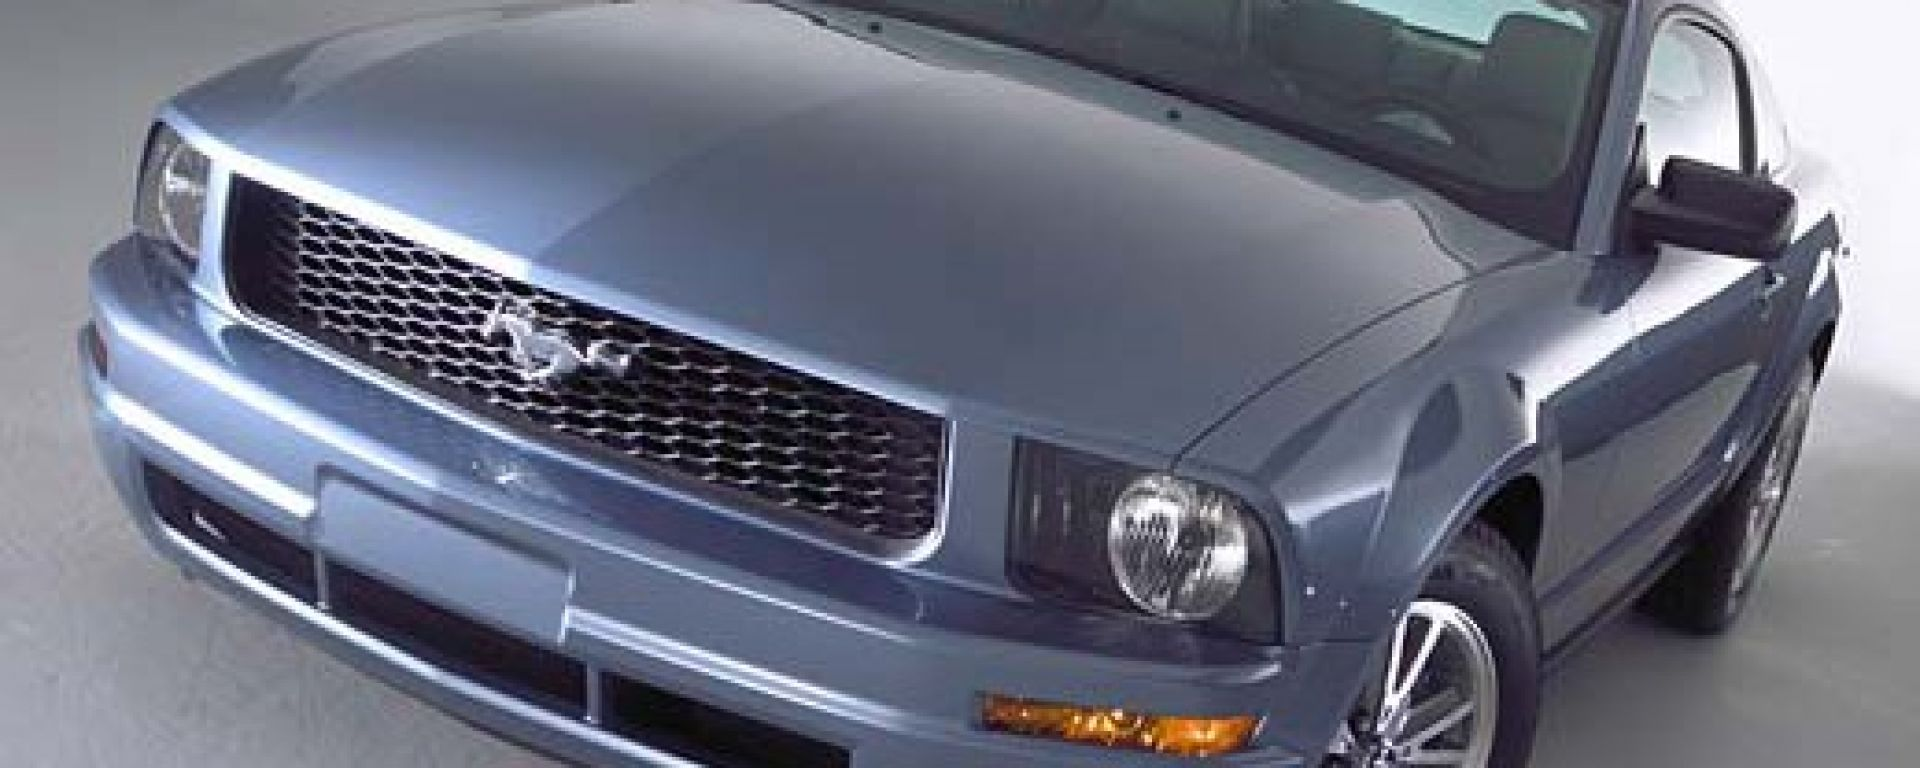 Anteprima: Ford Mustang 2005